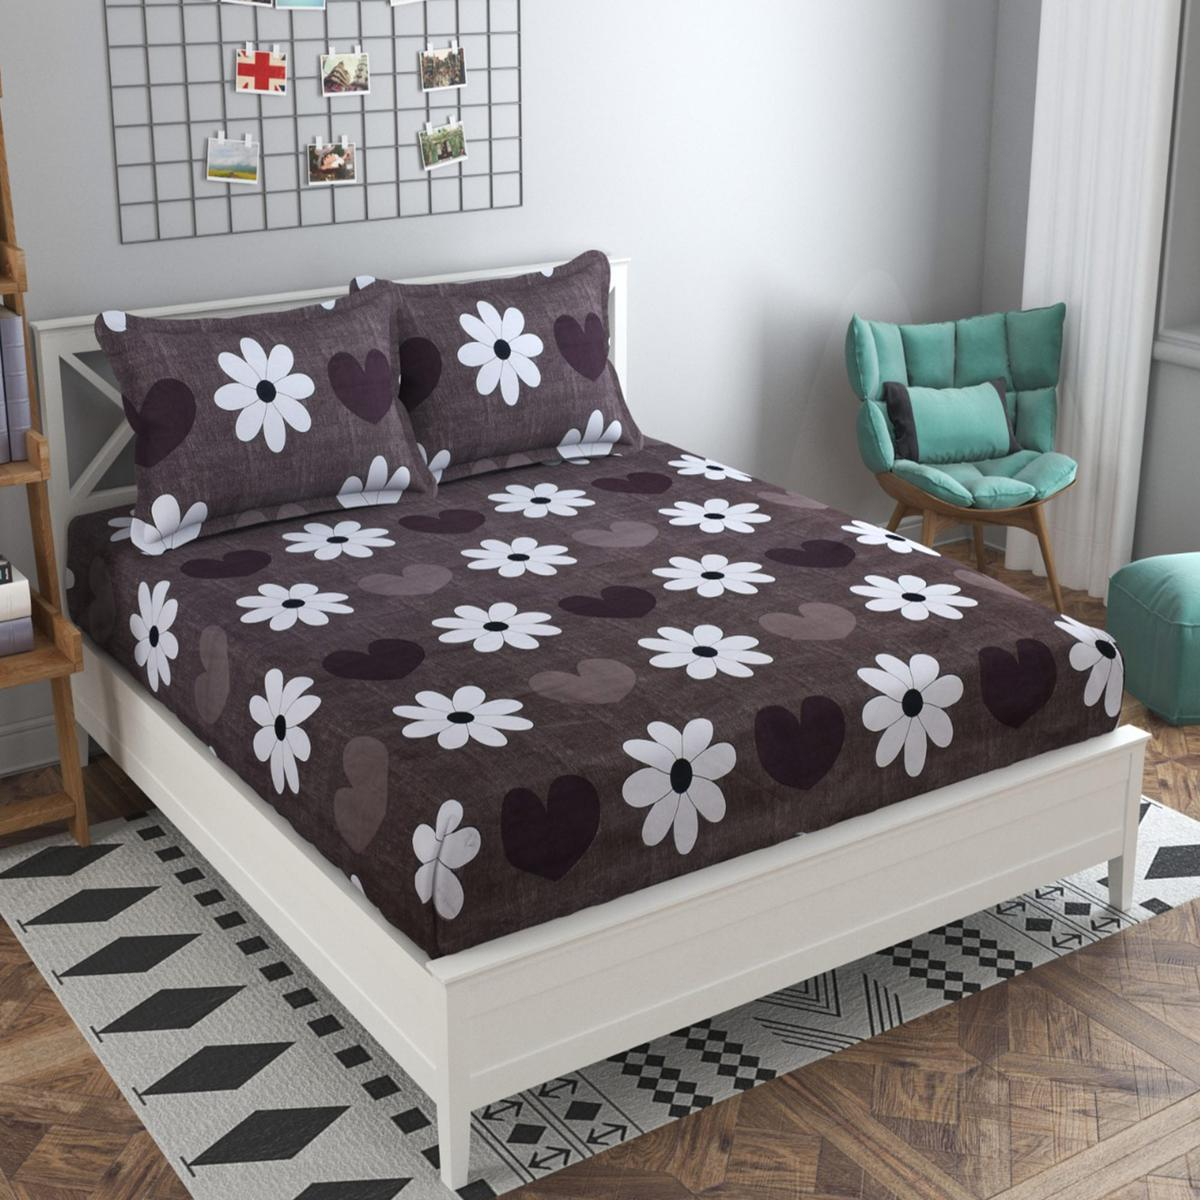 Adirav - Brown Colored Printed Glace Cotton Double Bedsheet With 2 Pillow Cover